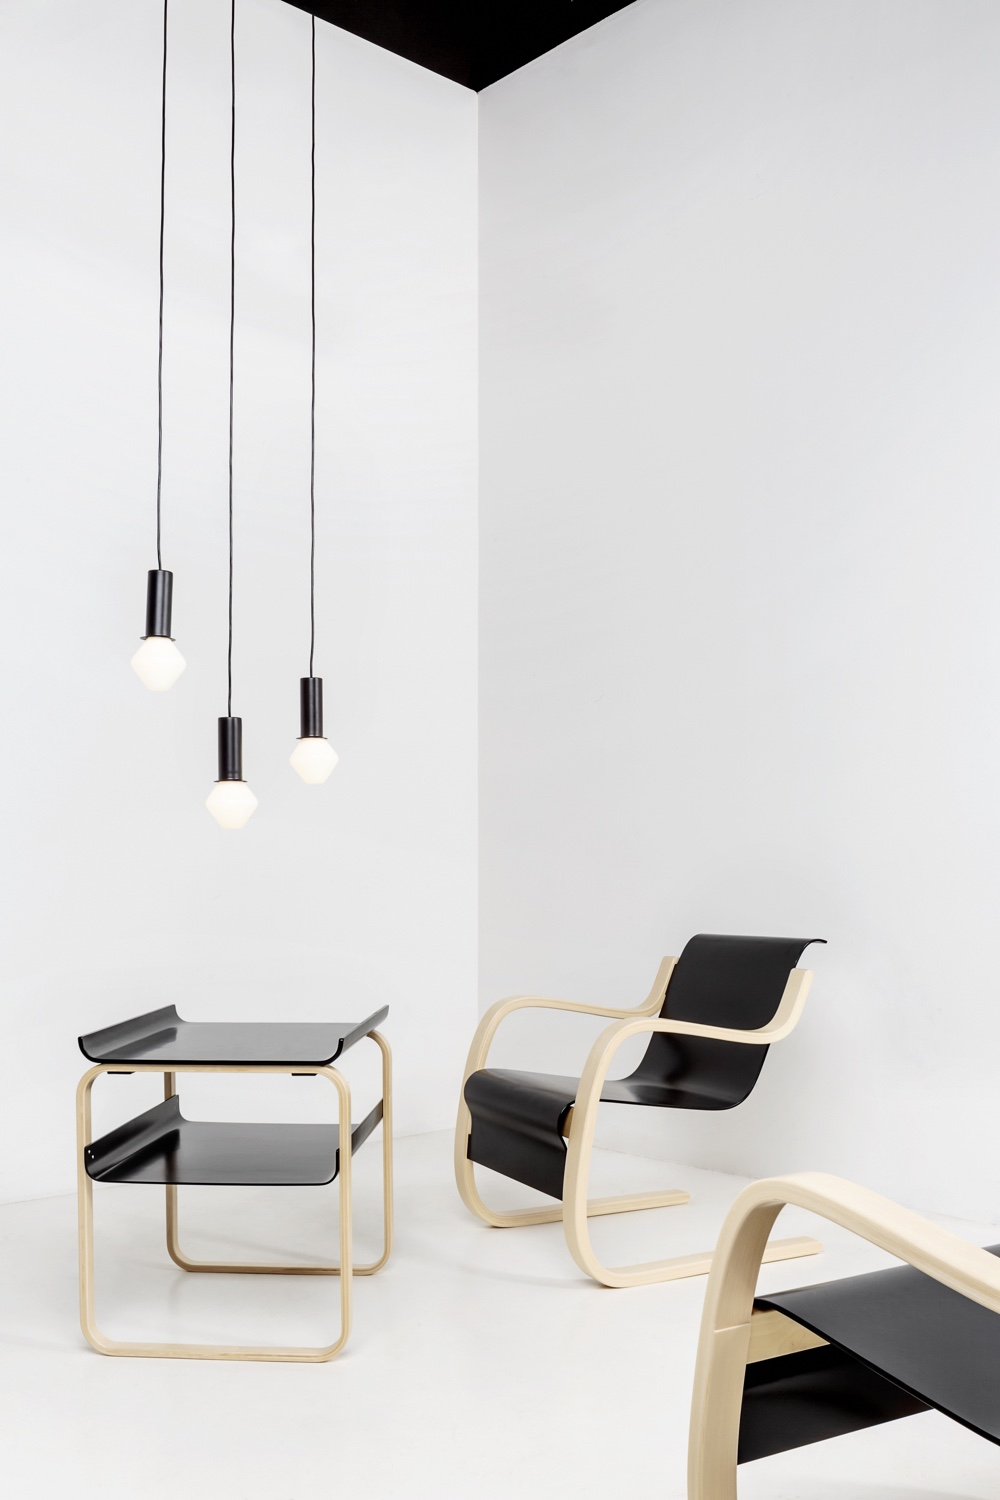 Pendant TW003, Table 915 and Armchair 42